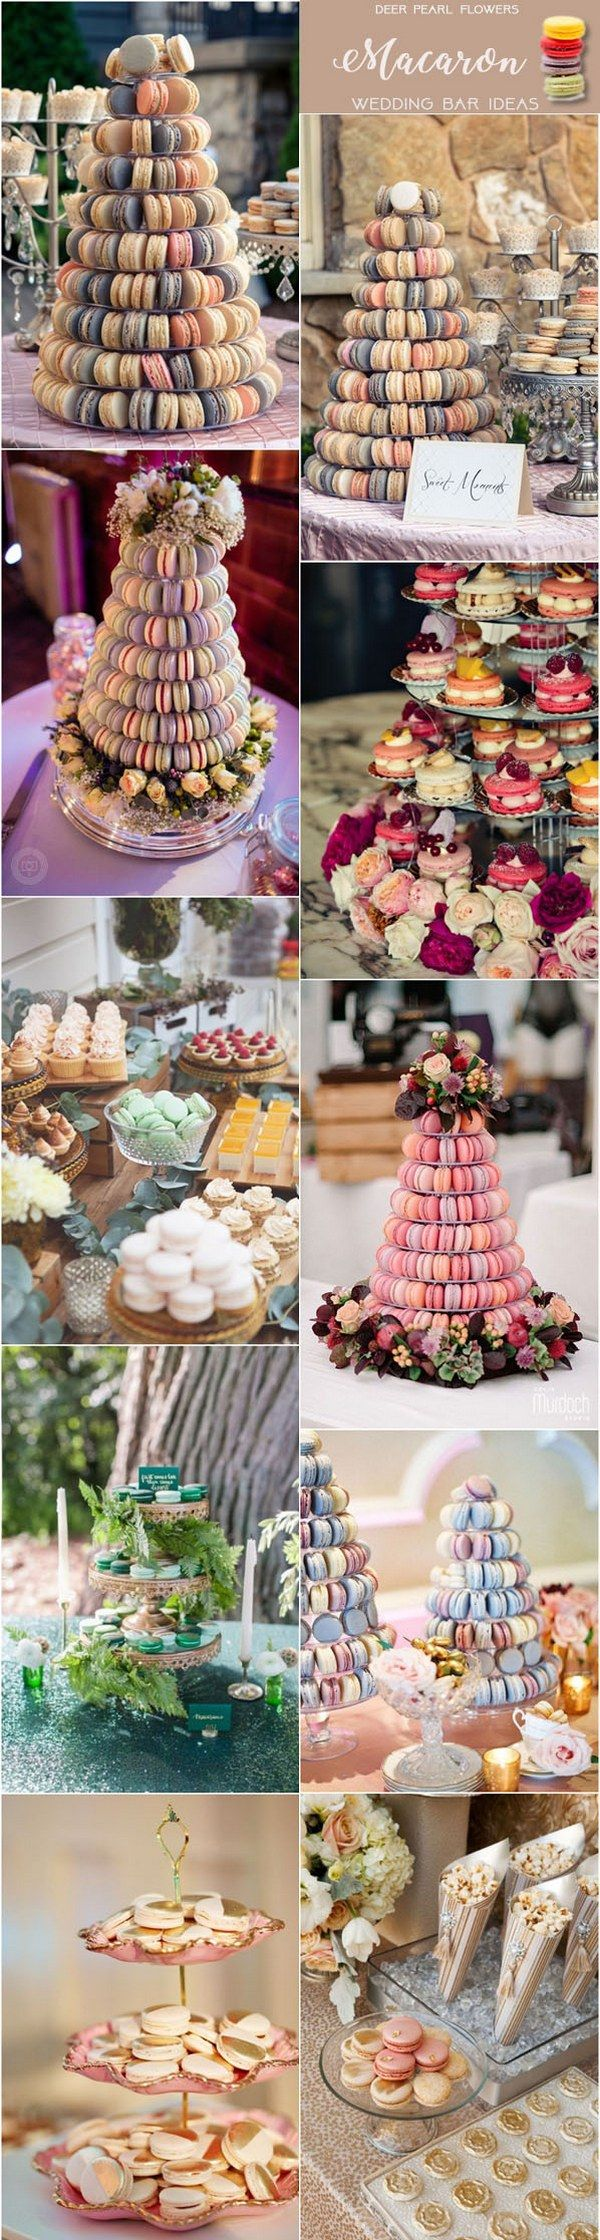 Macaron wedding dessert food bar ideas for wedding reception / http://www.deerpearlflowers.com/wedding-catering-trends-dessert-bar-ideas/2/